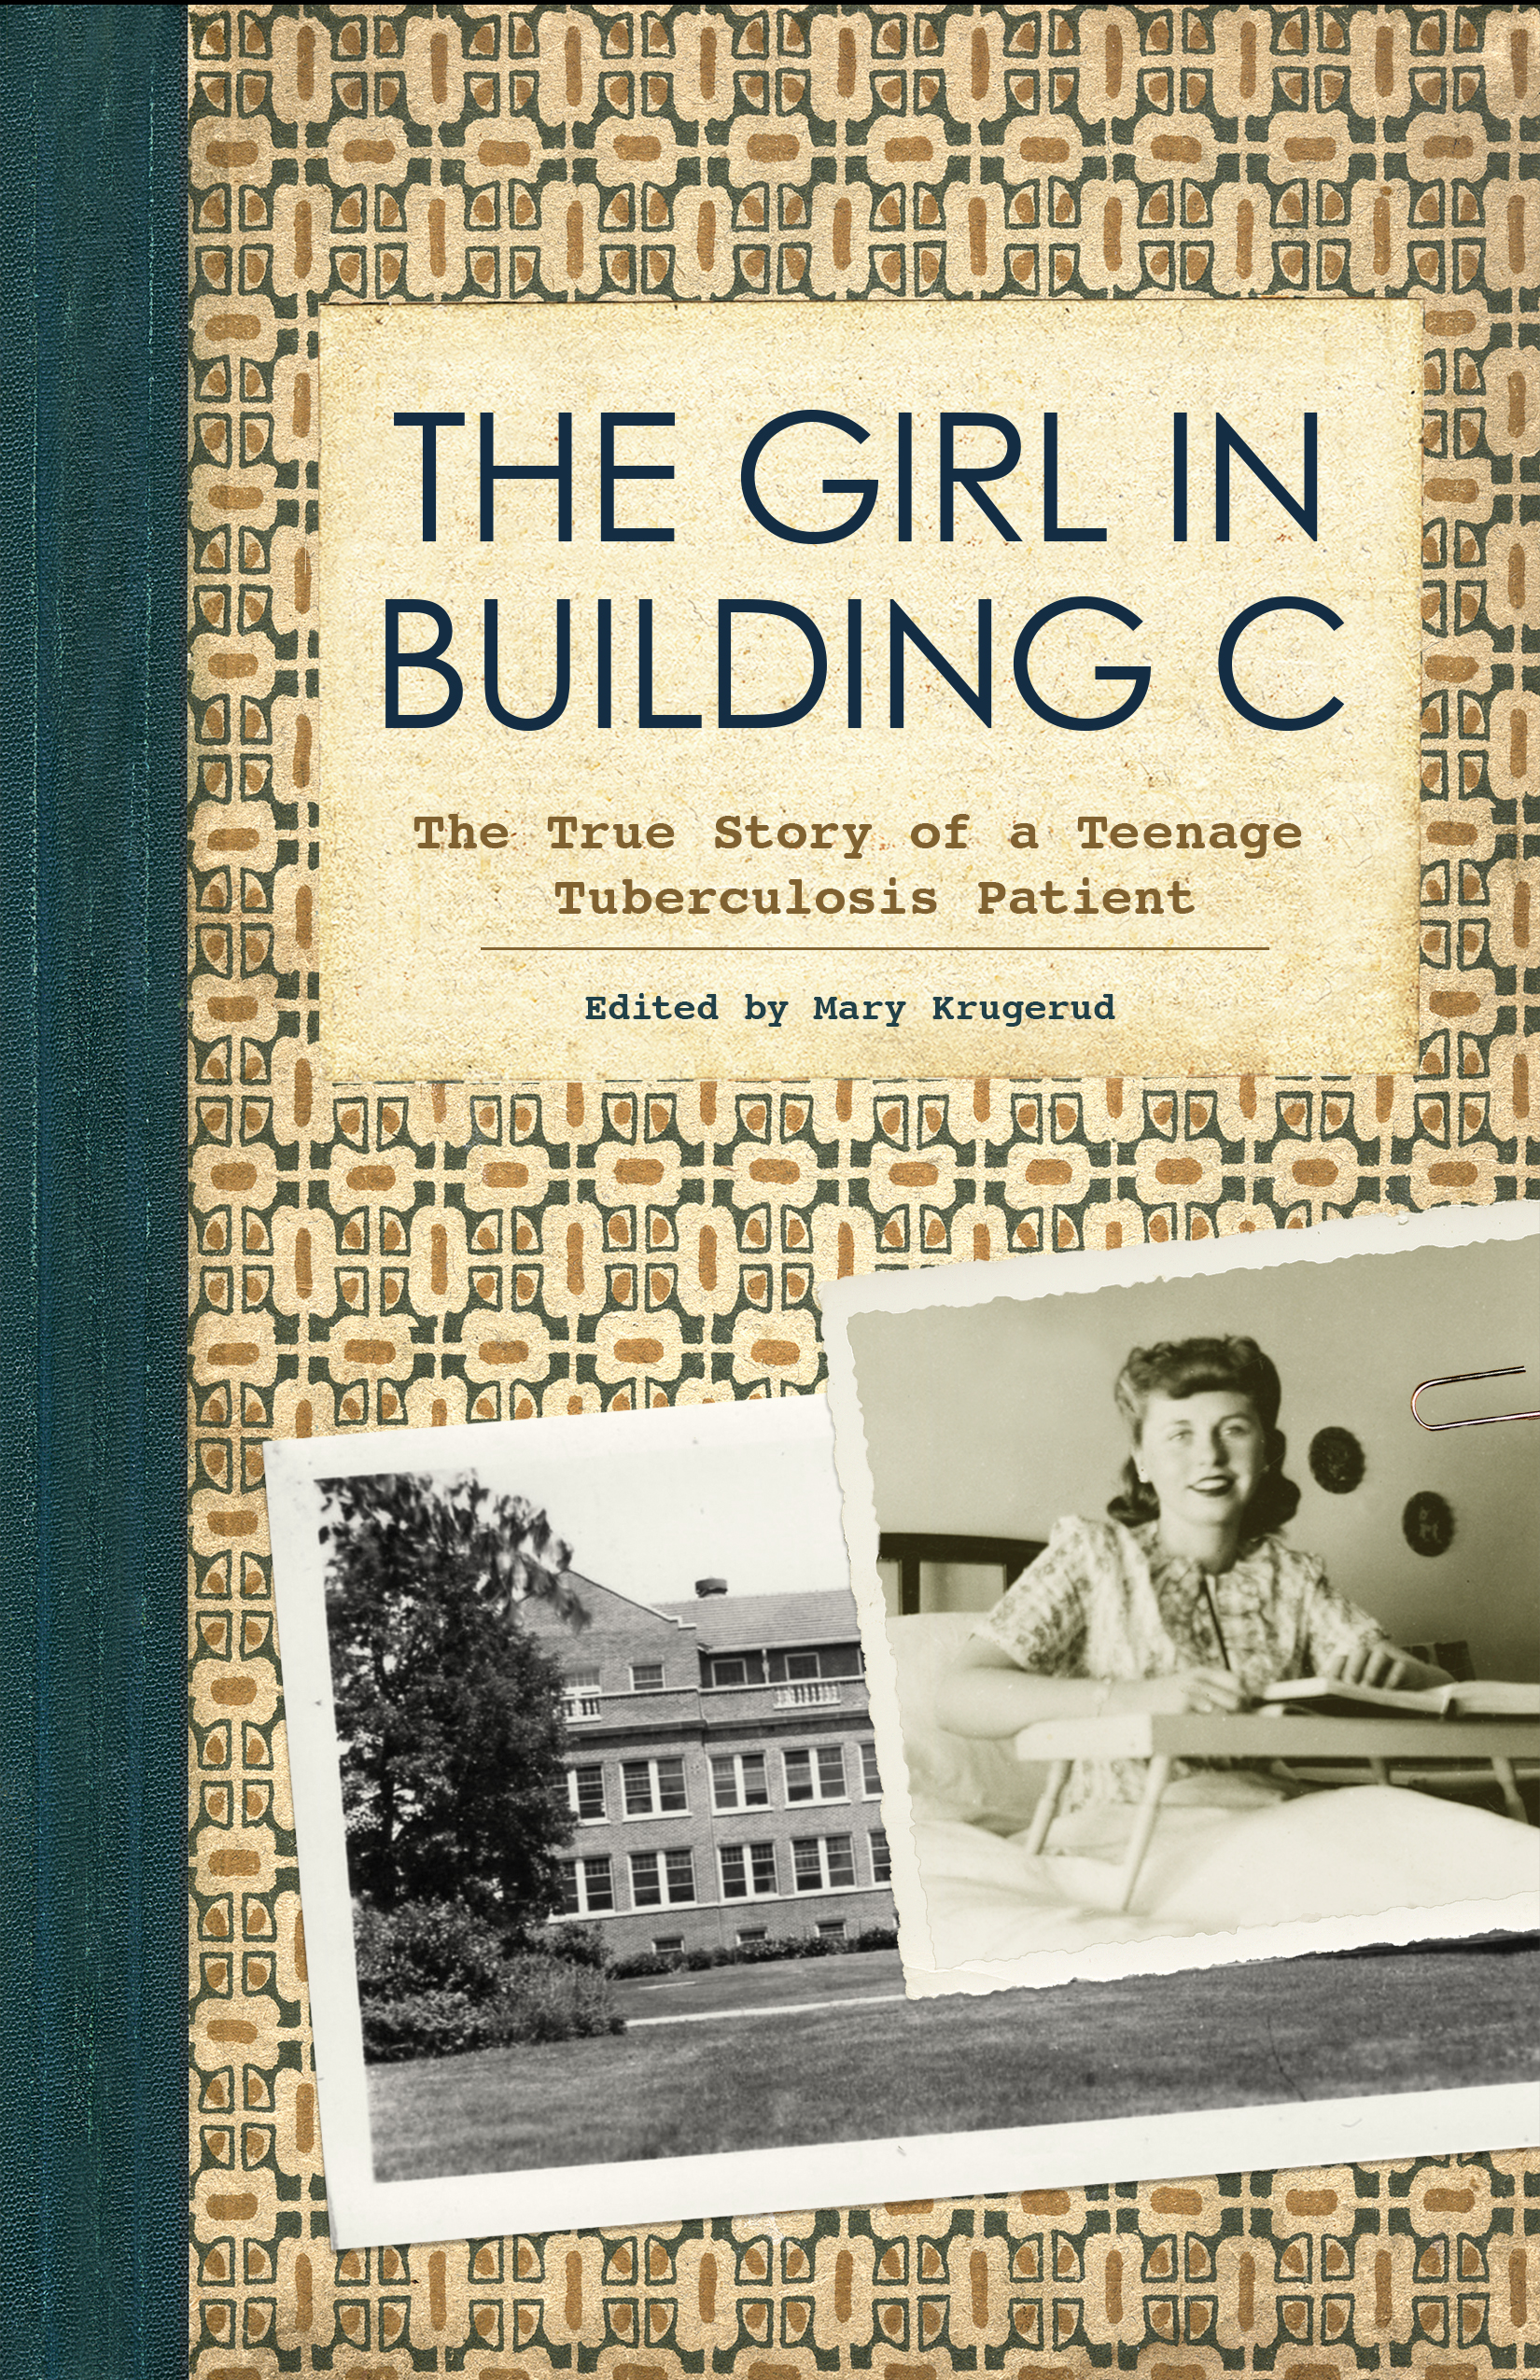 The Girl in Building C